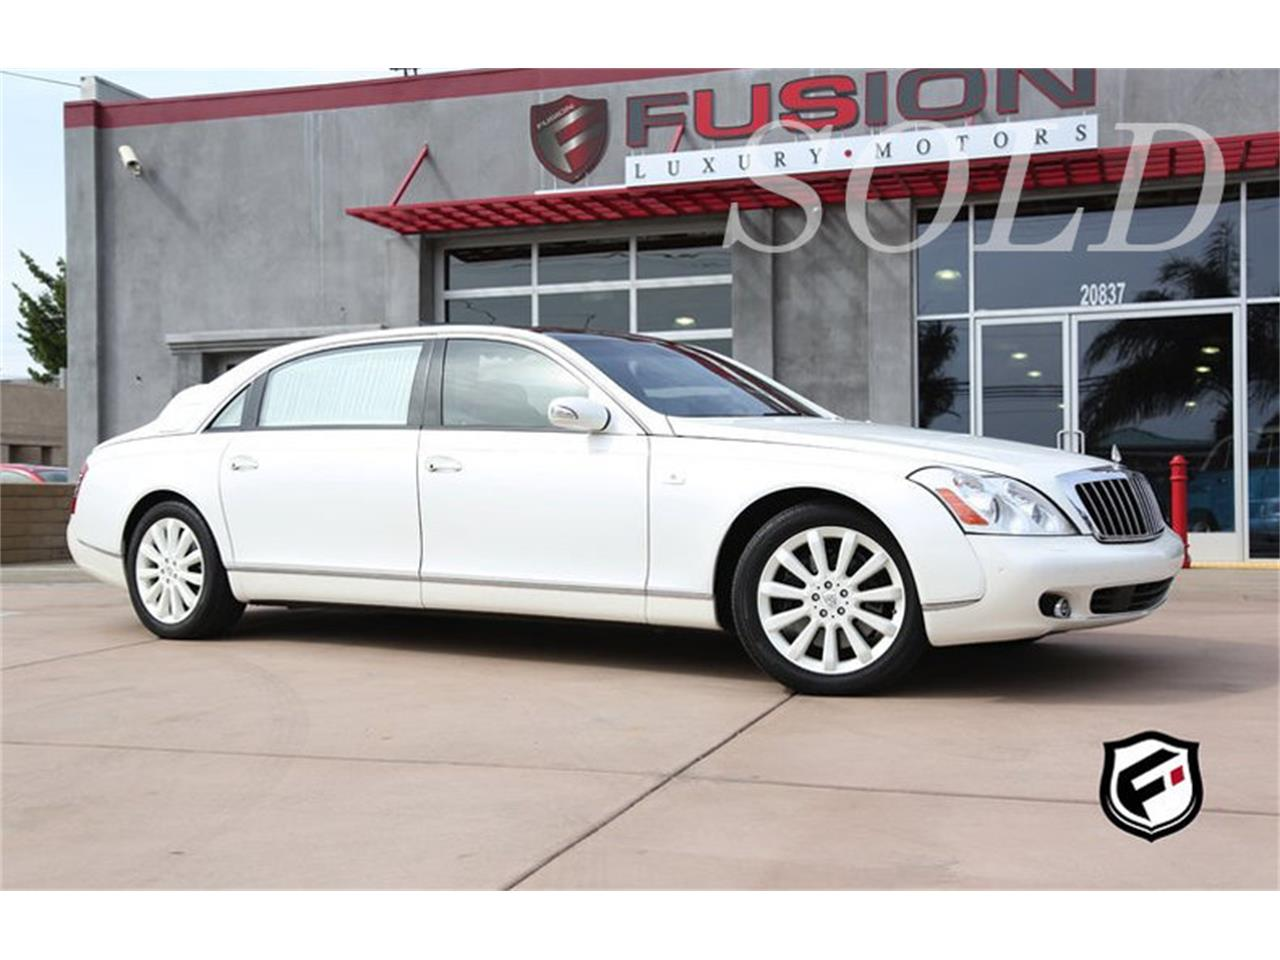 2009 maybach landaulet/62s convertible for sale | classiccars